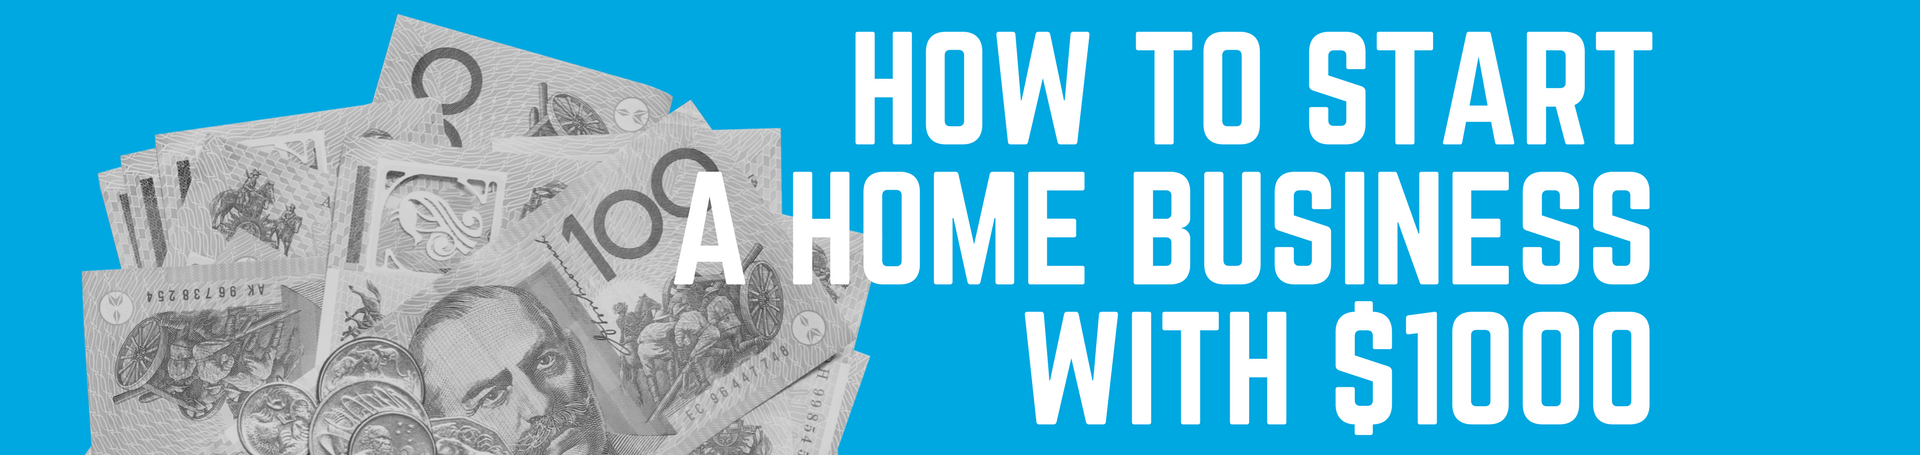 How to Start a Home Business with $1000